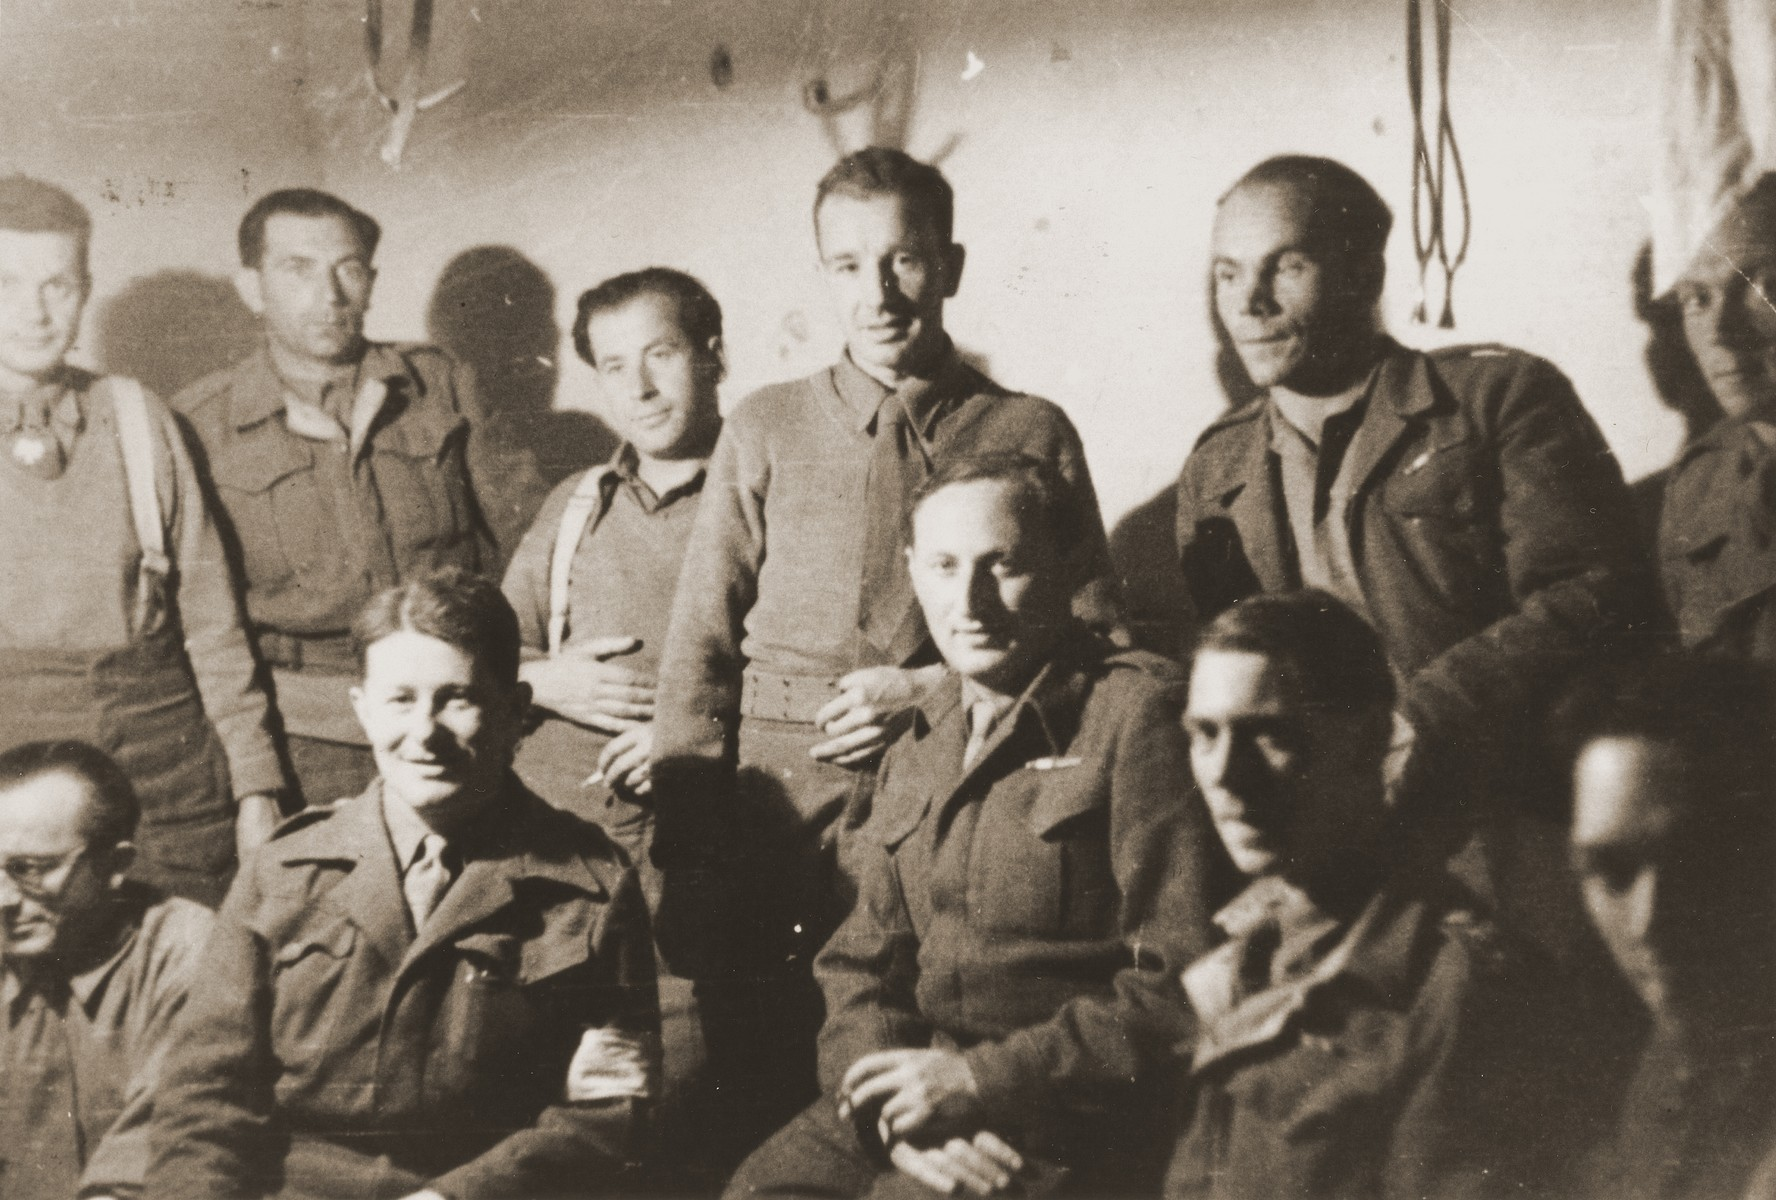 Group portrait of members of the Anders Army.  Dr. Arthur Haber, originally from Krakow, survived the war as a doctor in the Anders Army.  His wife, Sophie Ament Haber, escaped the Bochnia ghetto with her family in June 1943.  After liberation she found her husband in Italy.